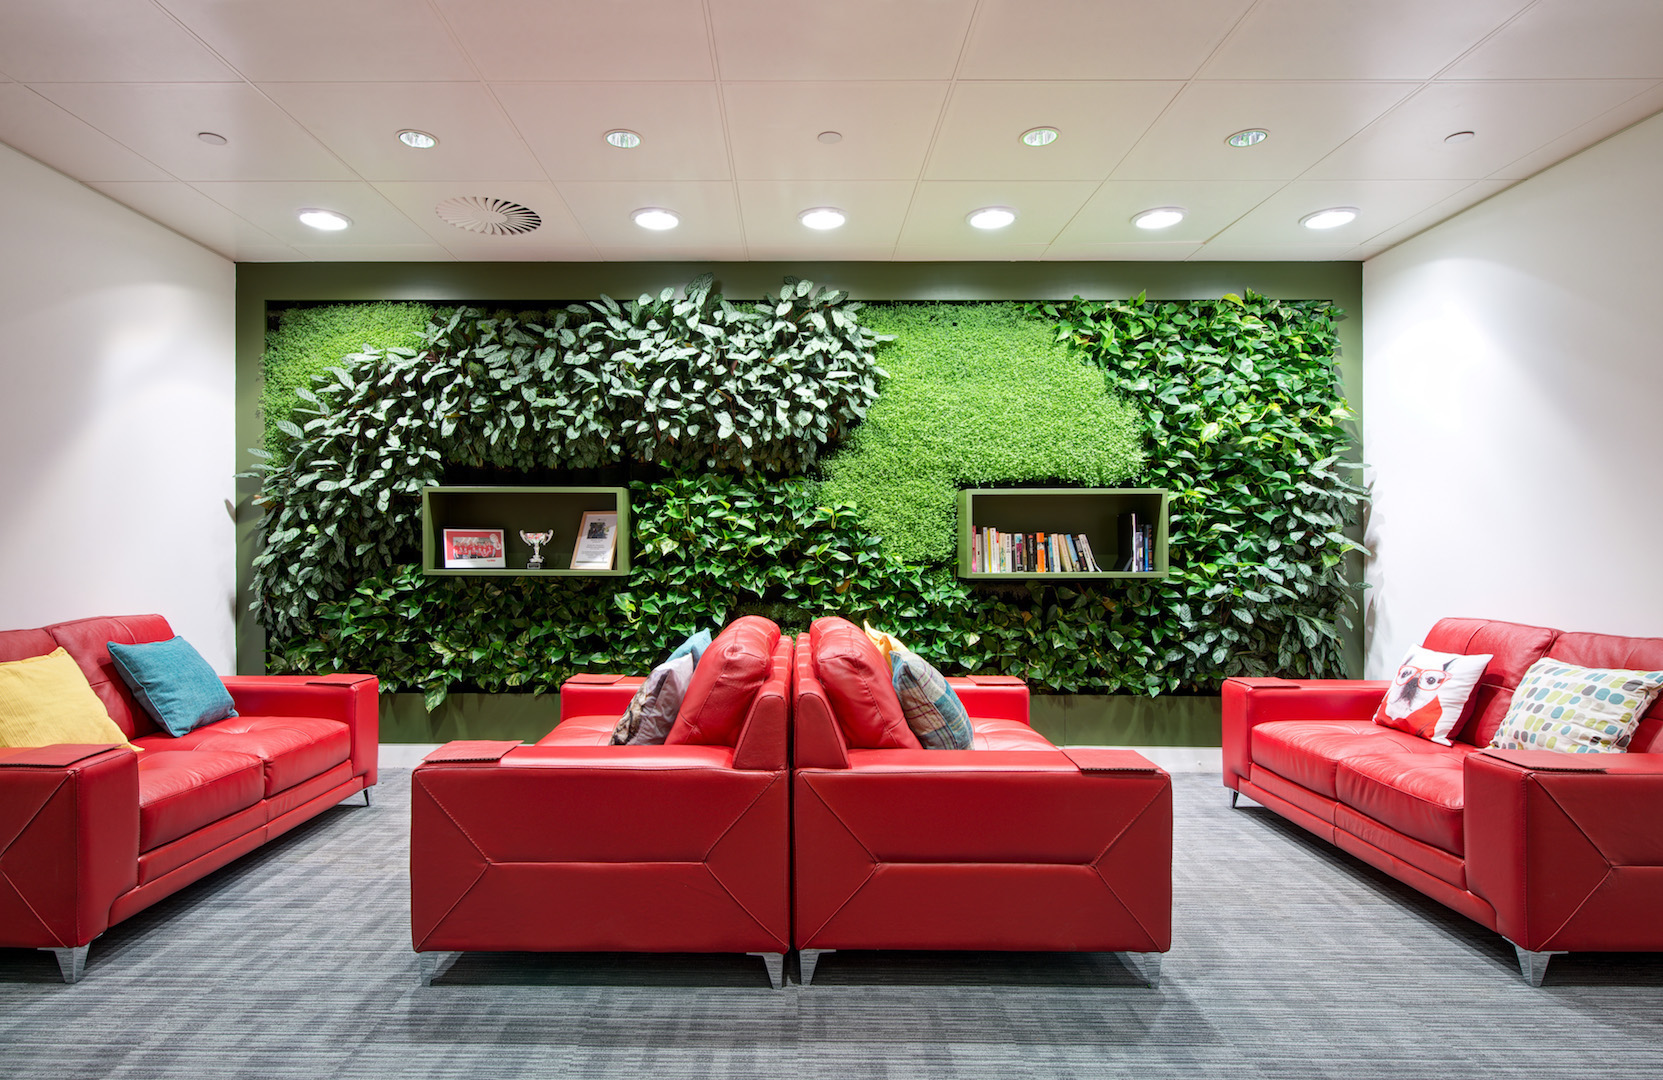 10 Ways To Make Your Work Environment Healthier